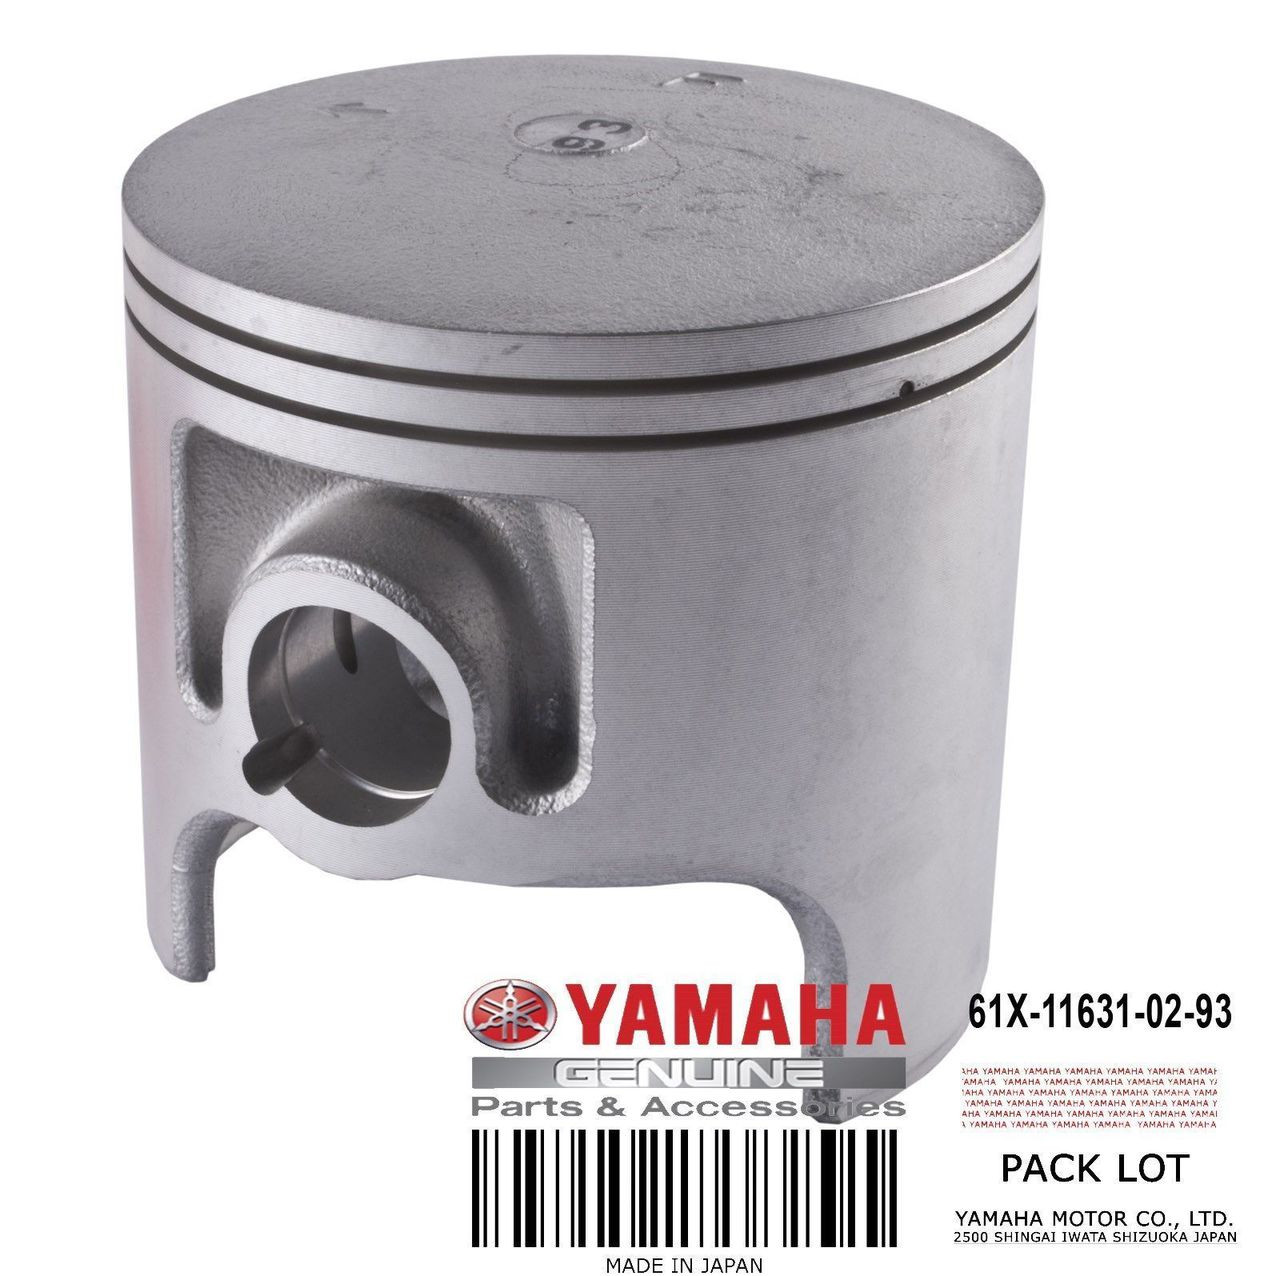 Yamaha 6B6-11603-00-00 PISTON RING SET STD